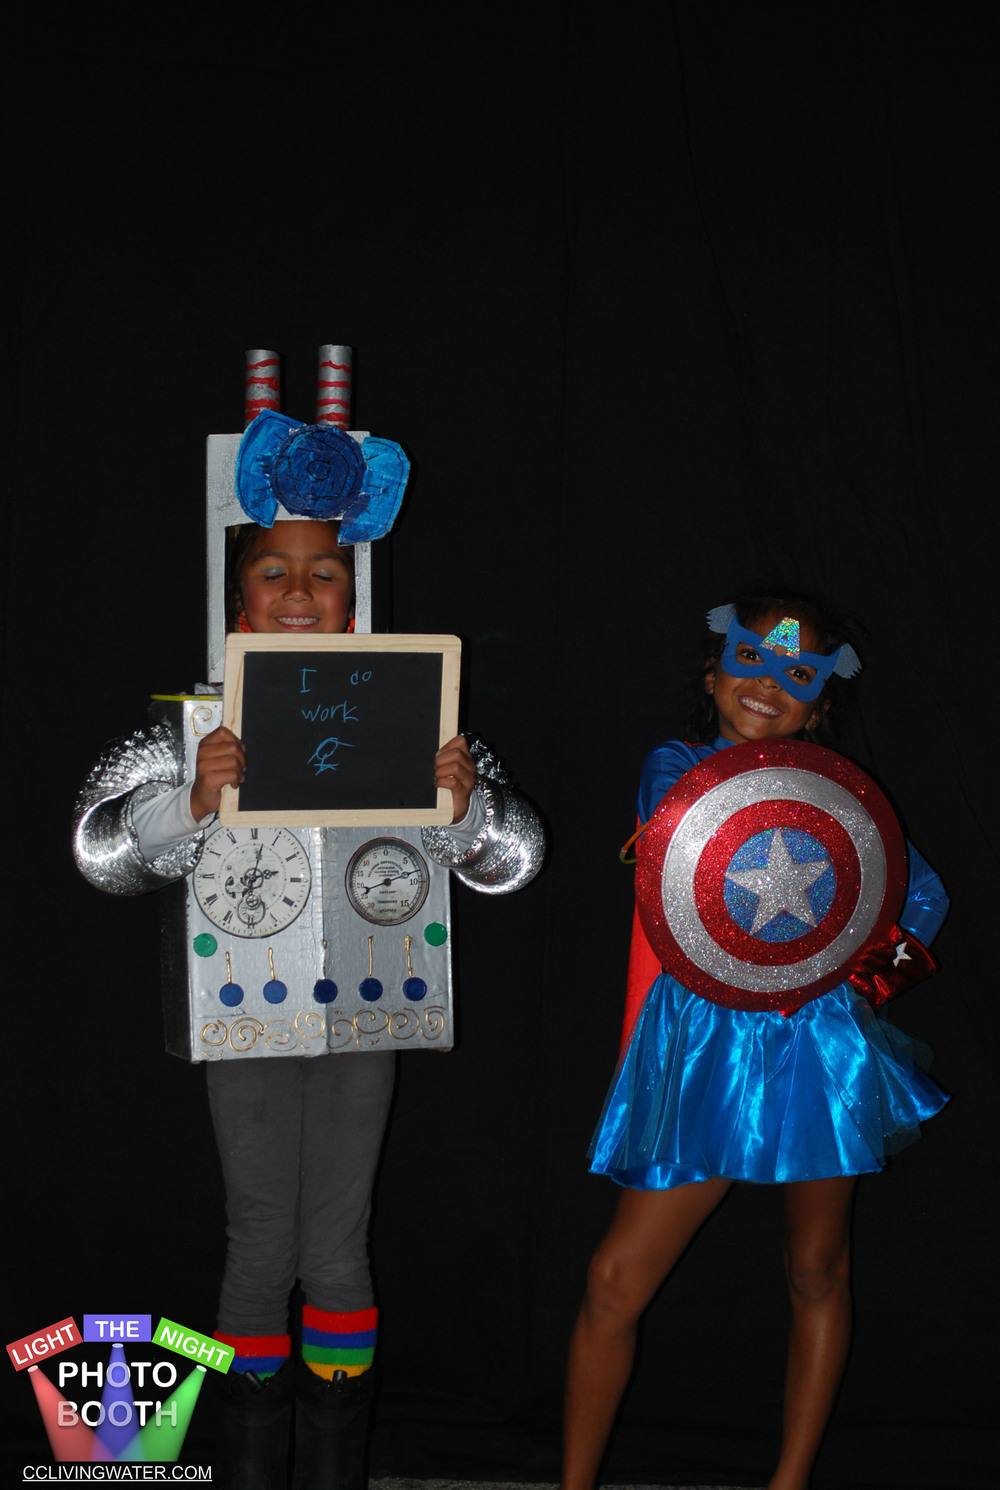 2014-10 - Light The Night Photo Booth (139) copy.jpg